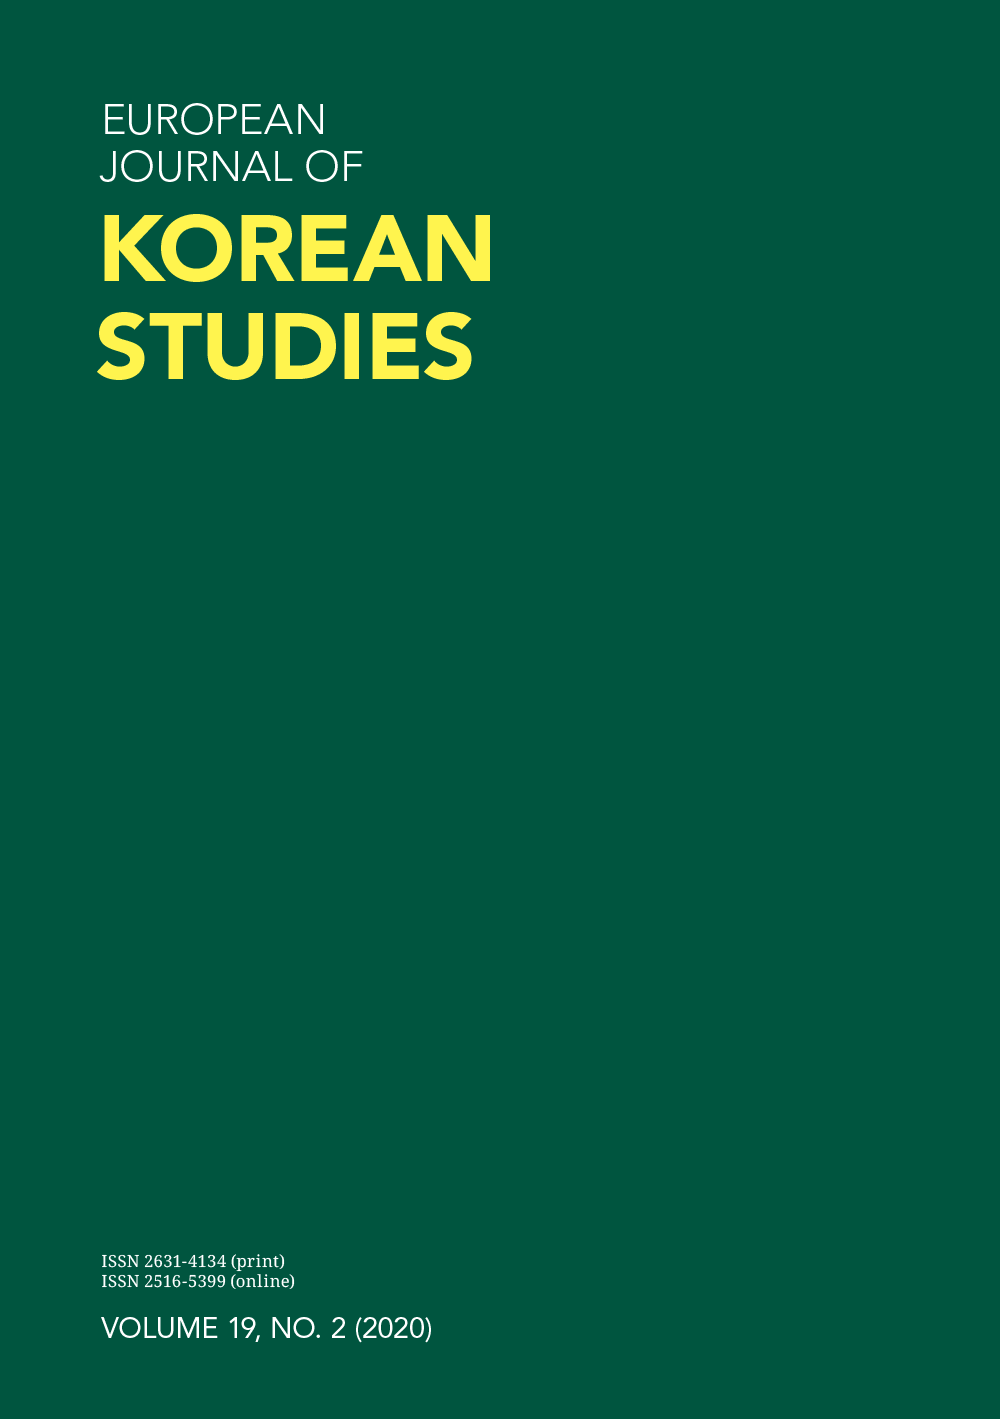 European Journal of Korean Studies – Vol 19.2